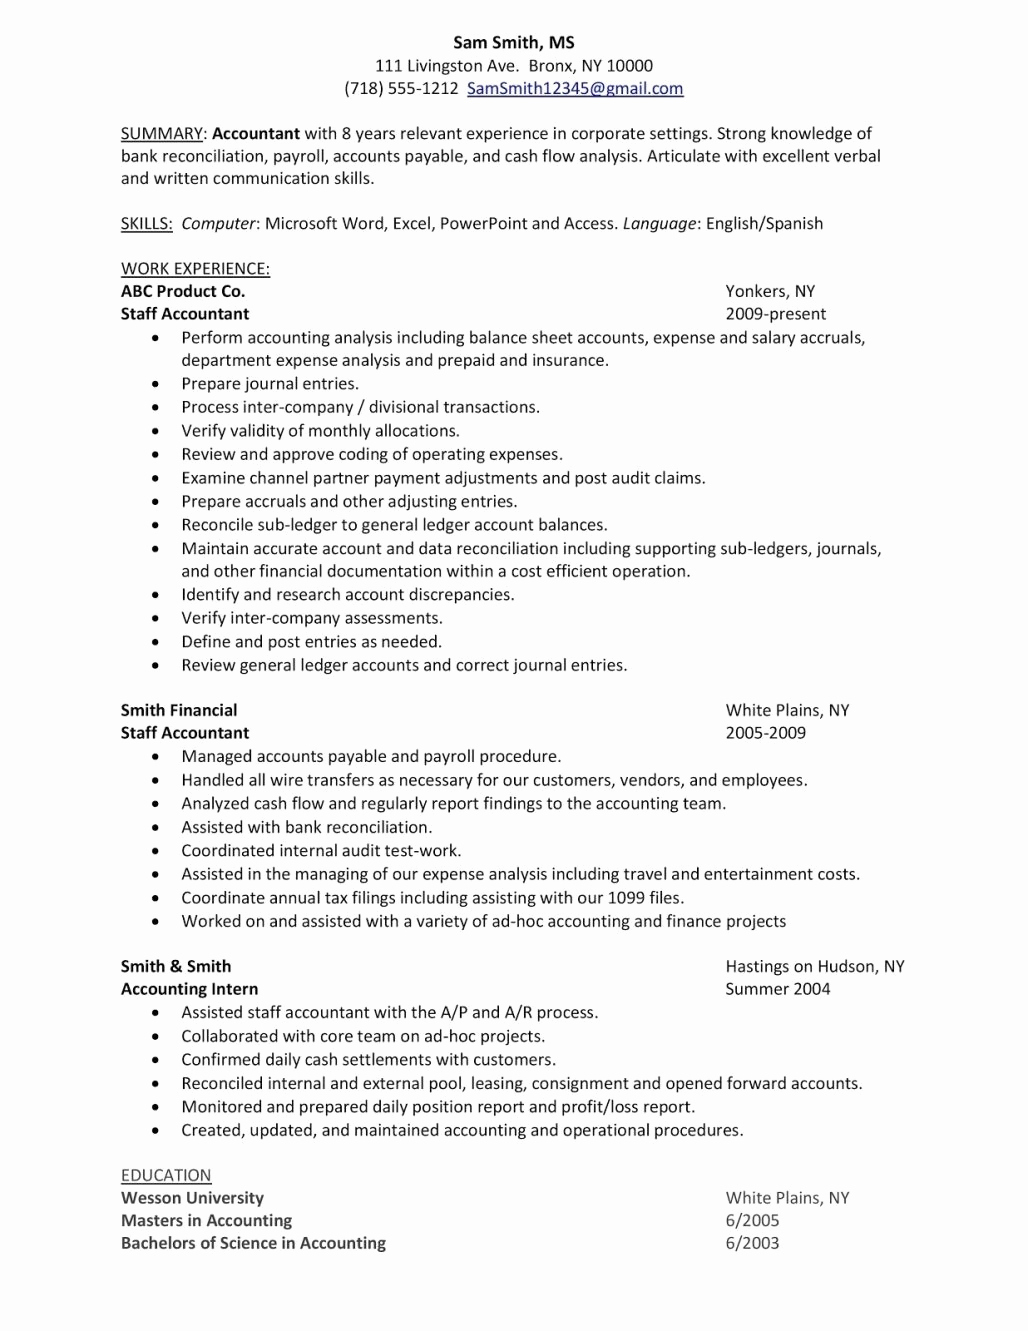 Business Valuation Engagement Letter Template - 20 Sample Consulting Engagement Letters